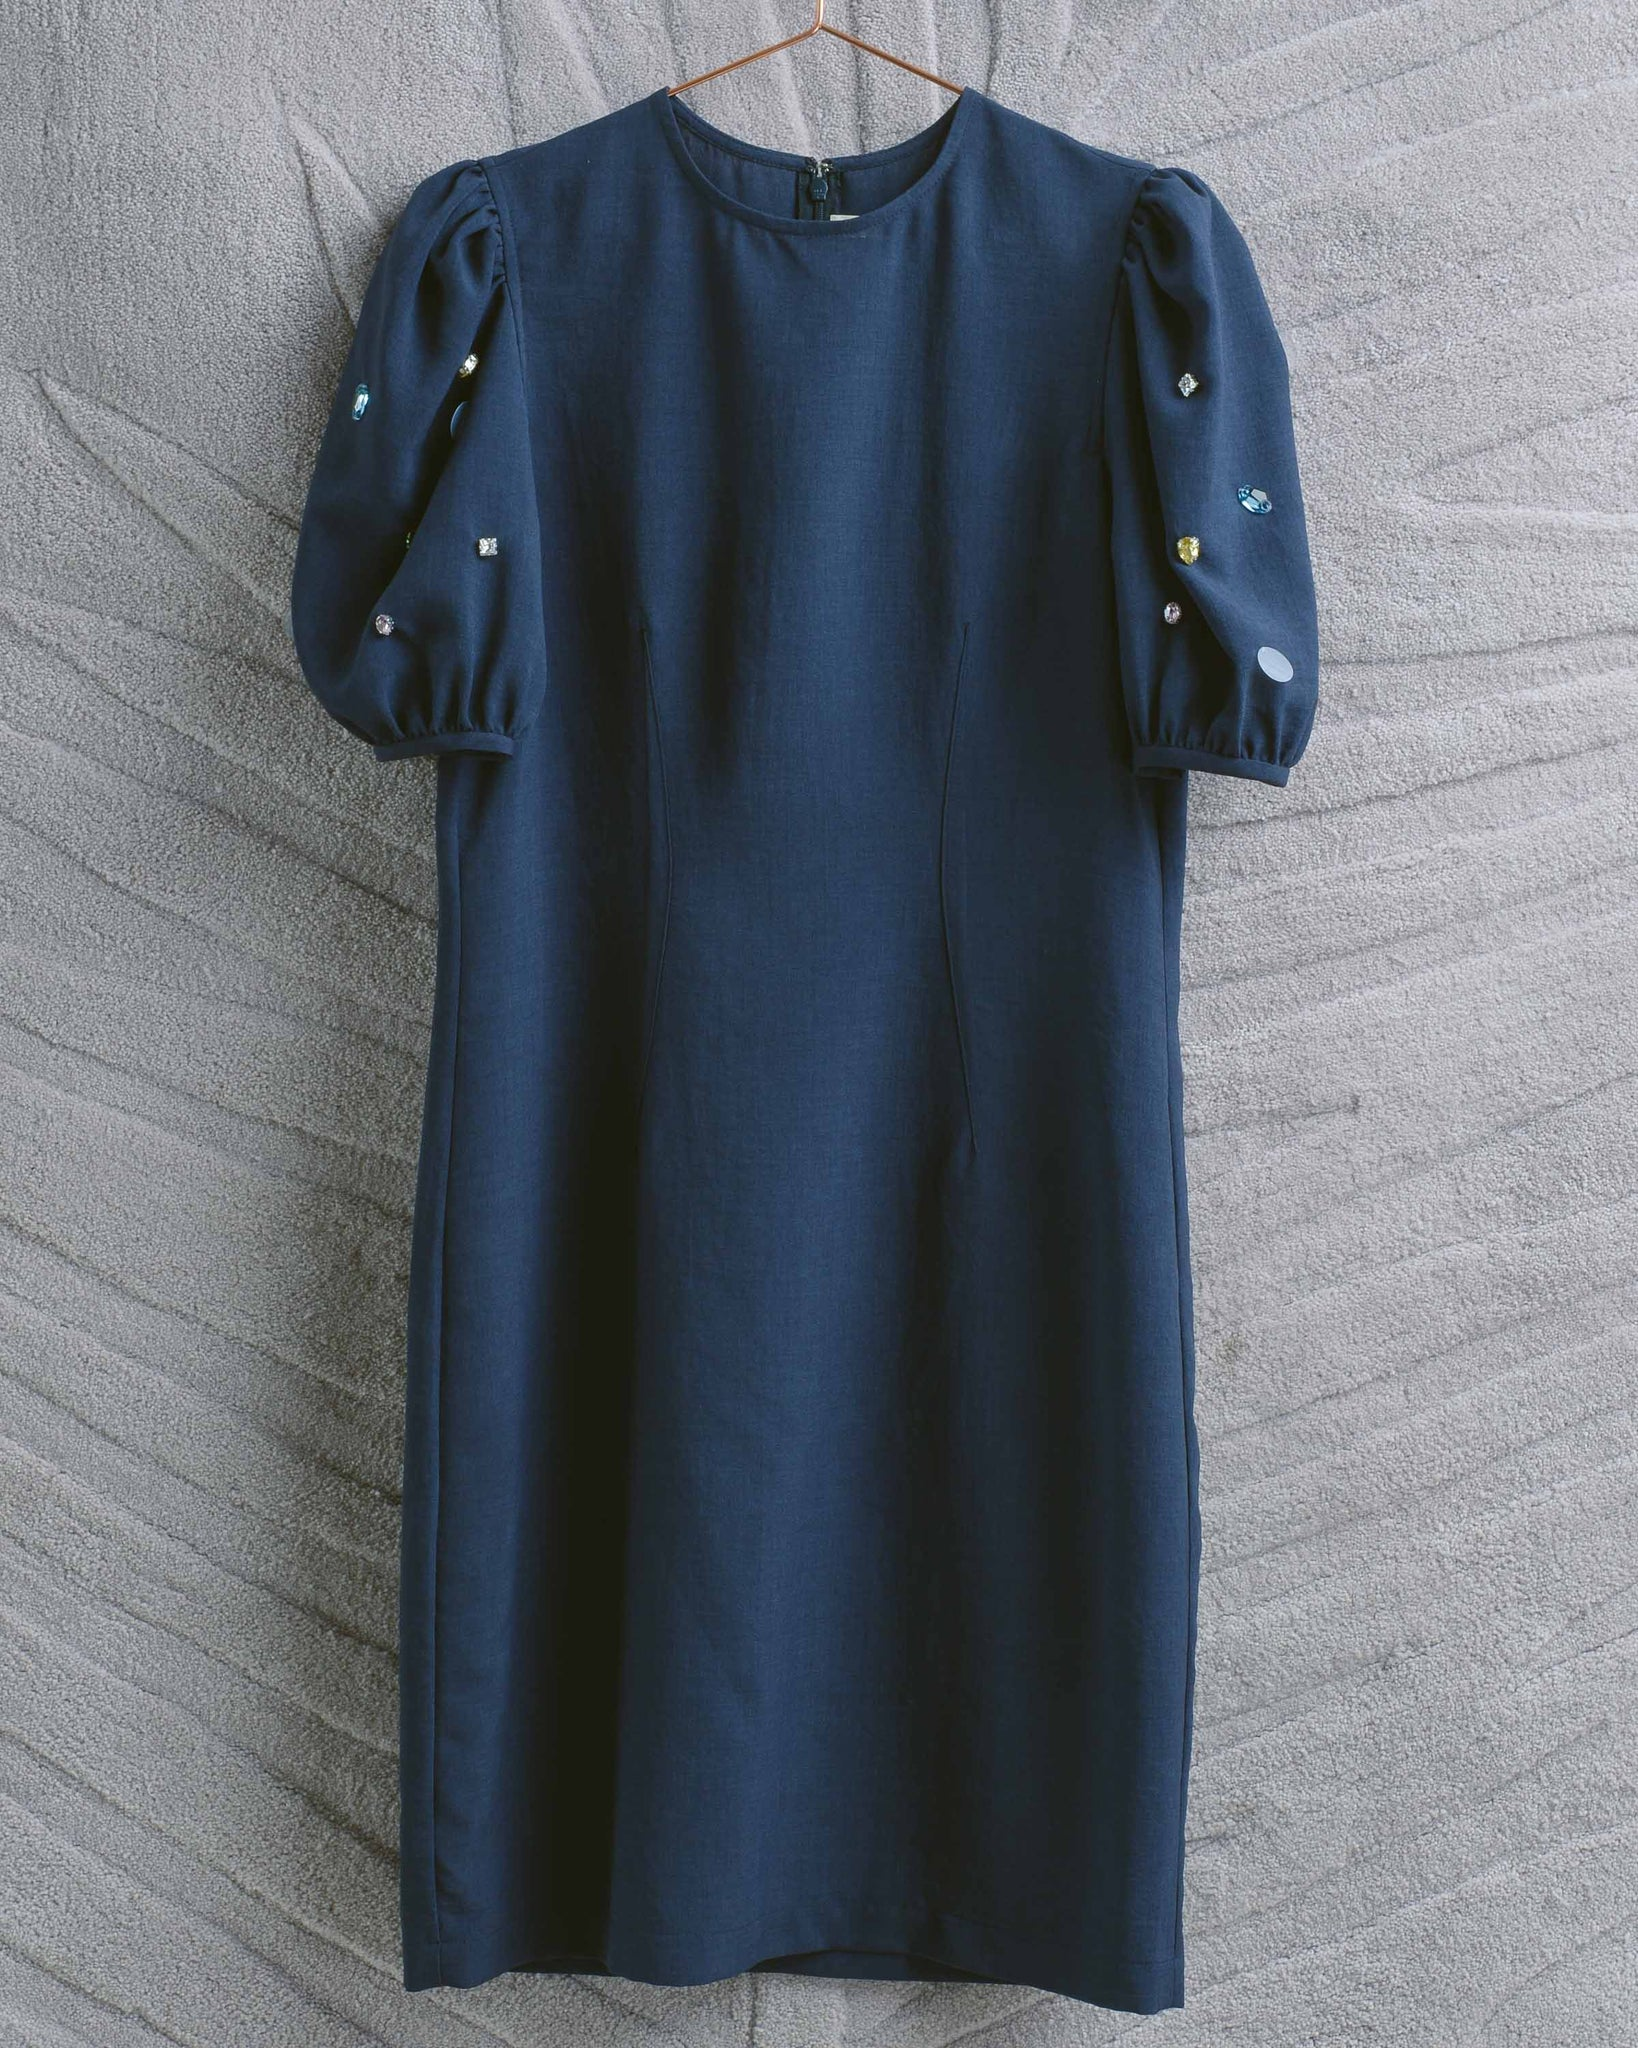 Navy Poof Embellished Sleeve Dress